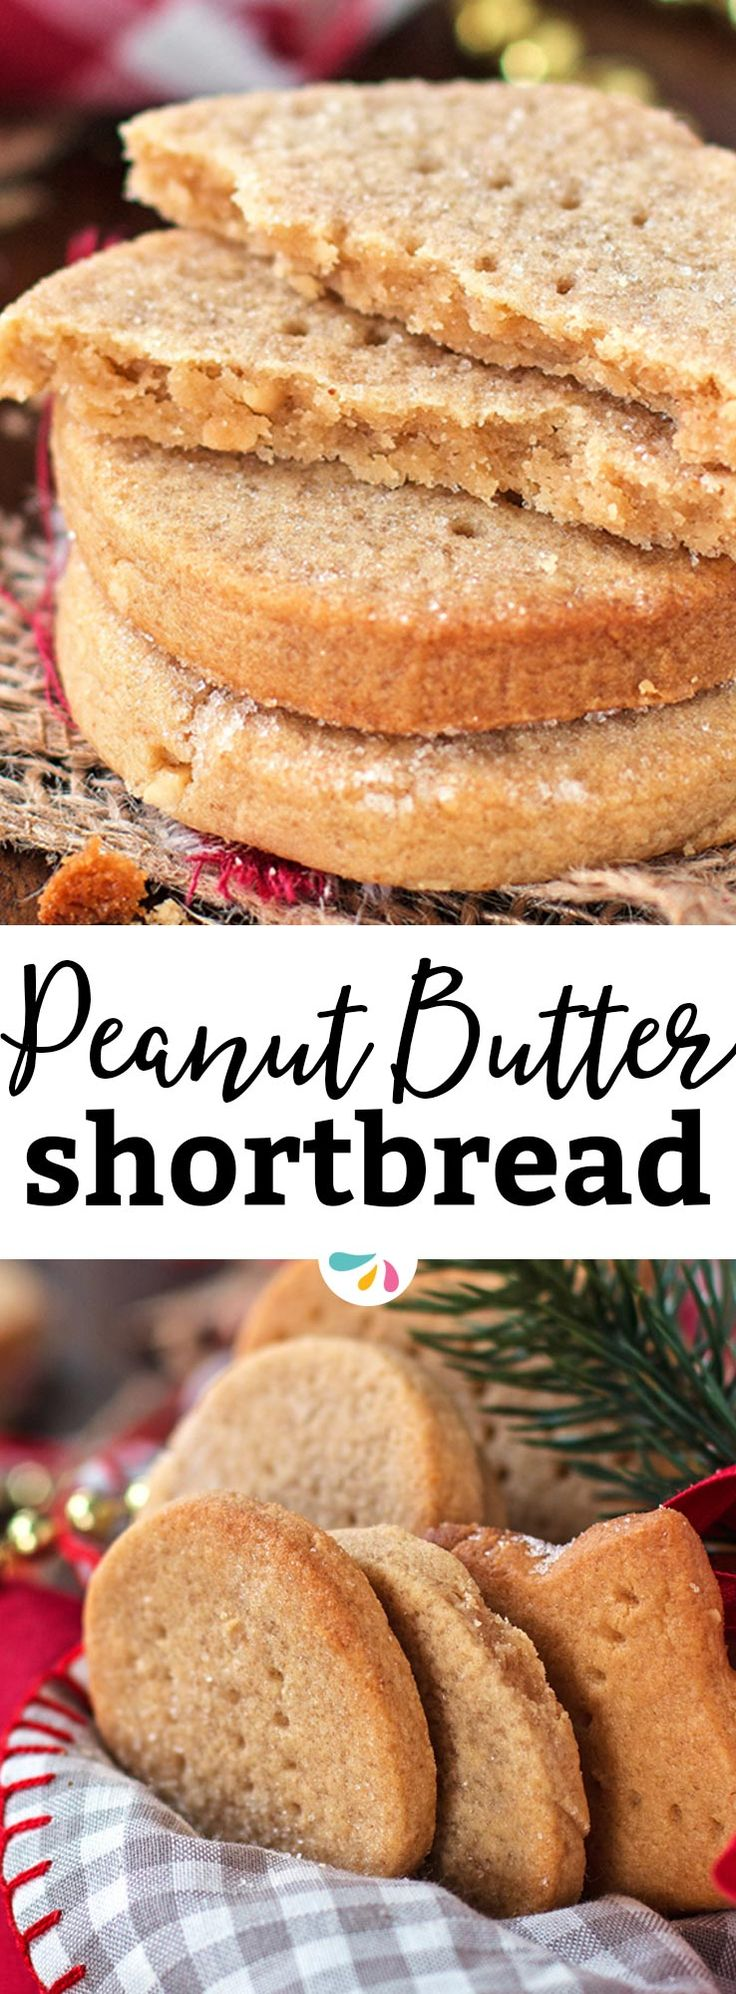 Are you looking for an easy but unique Christmas cookie? This Peanut Butter Shortbread recipe is your winner! It's crumbly and buttery like traditional Scottish shortbread, but with flavours of peanut butter and honey all the way through. The best twist on a classic old favorite!